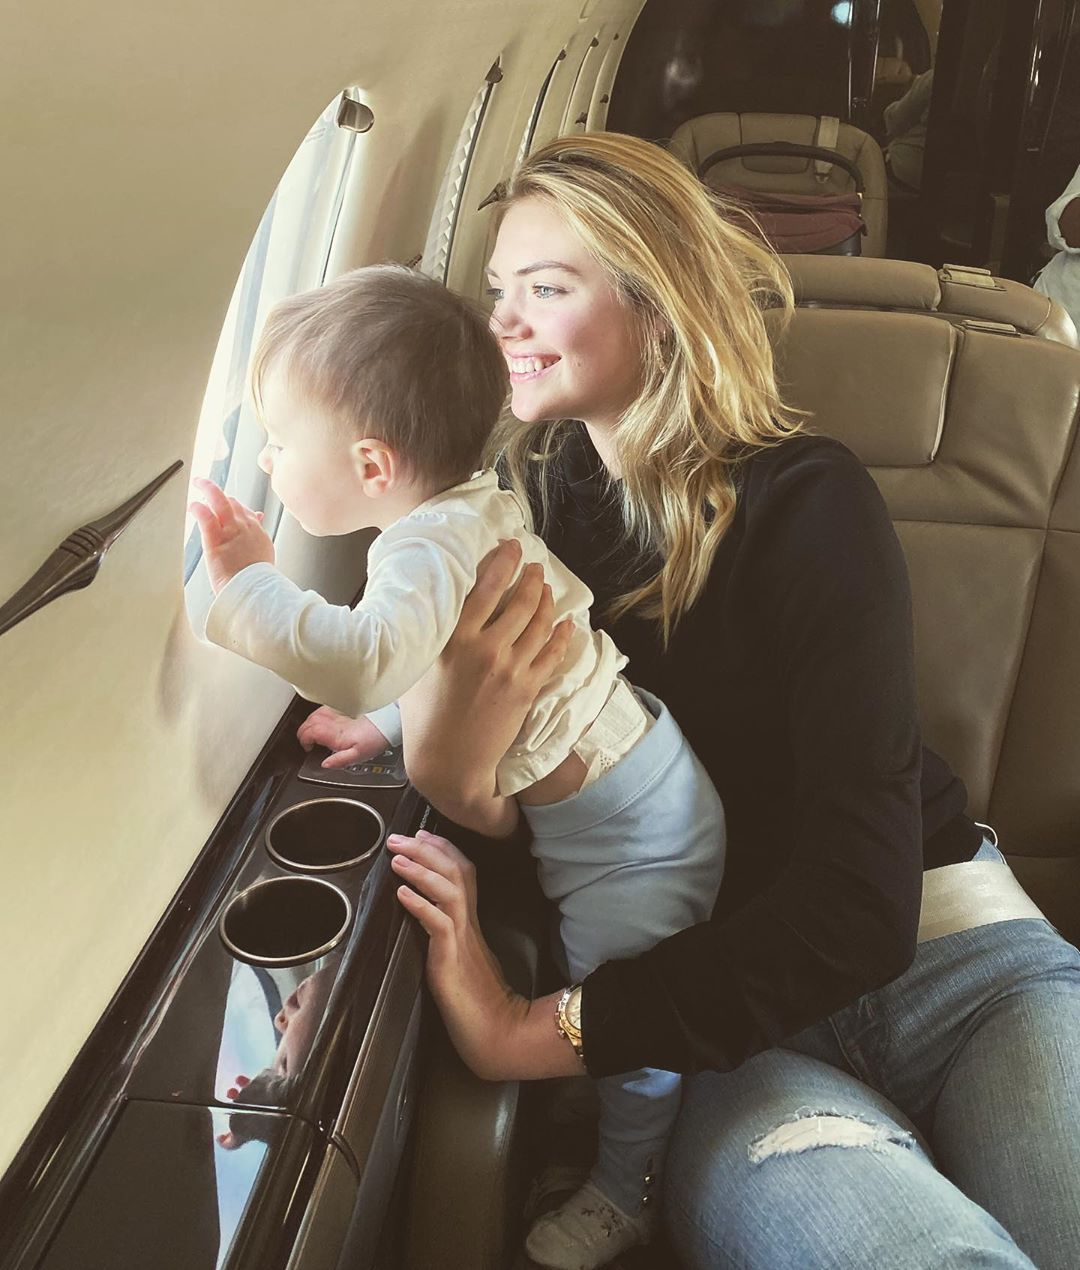 Kate Upton and her daughter on a private jet